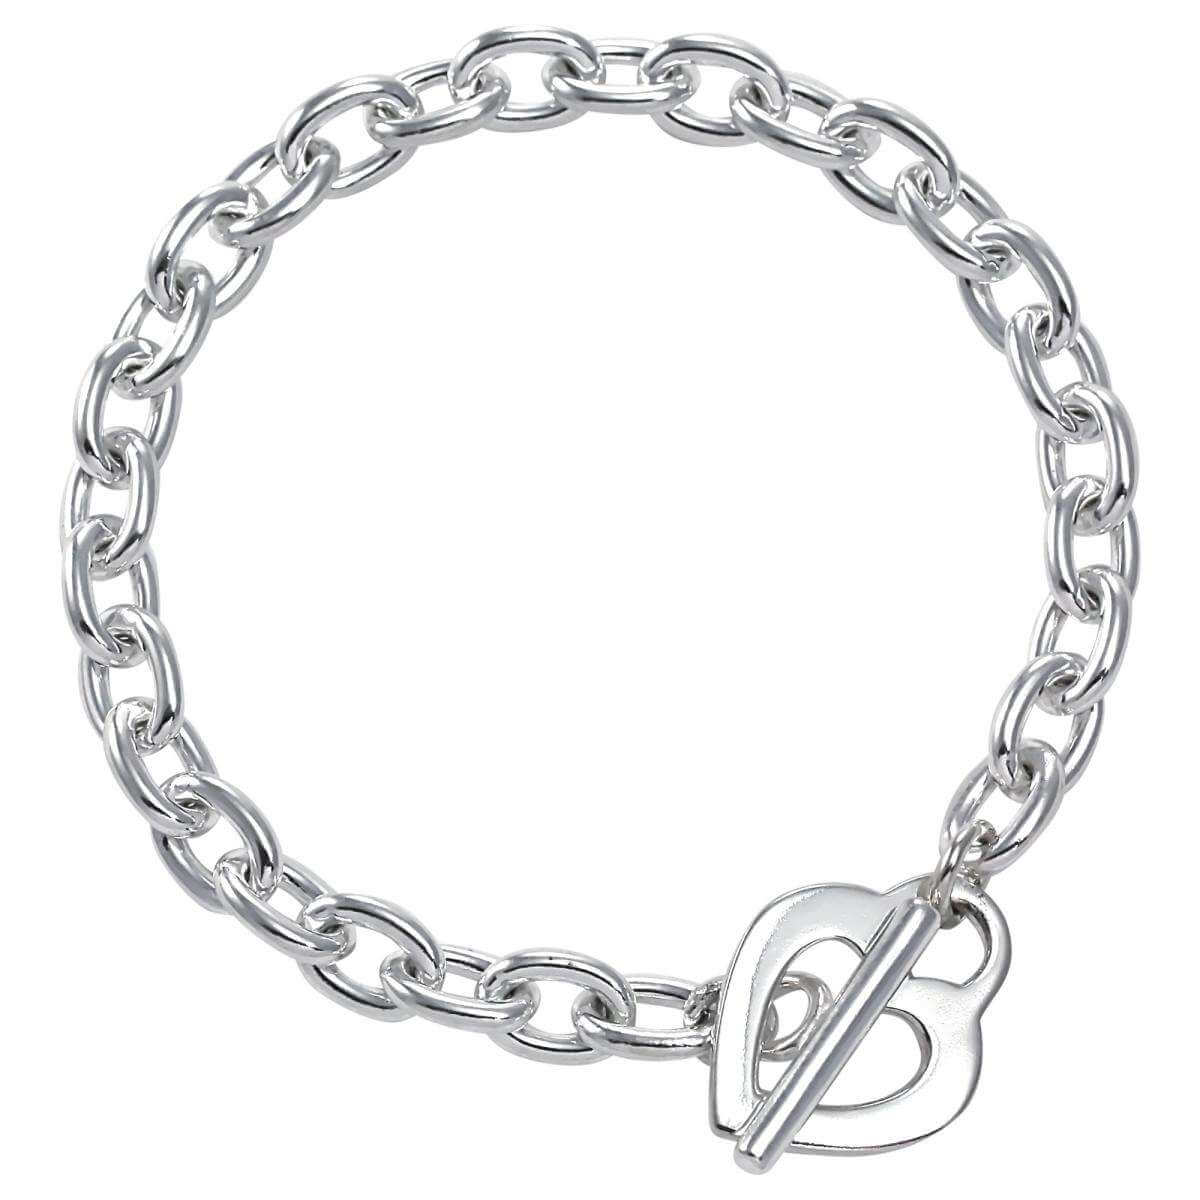 Sterling Silver Cable Chain Bracelet With Heart Toggle